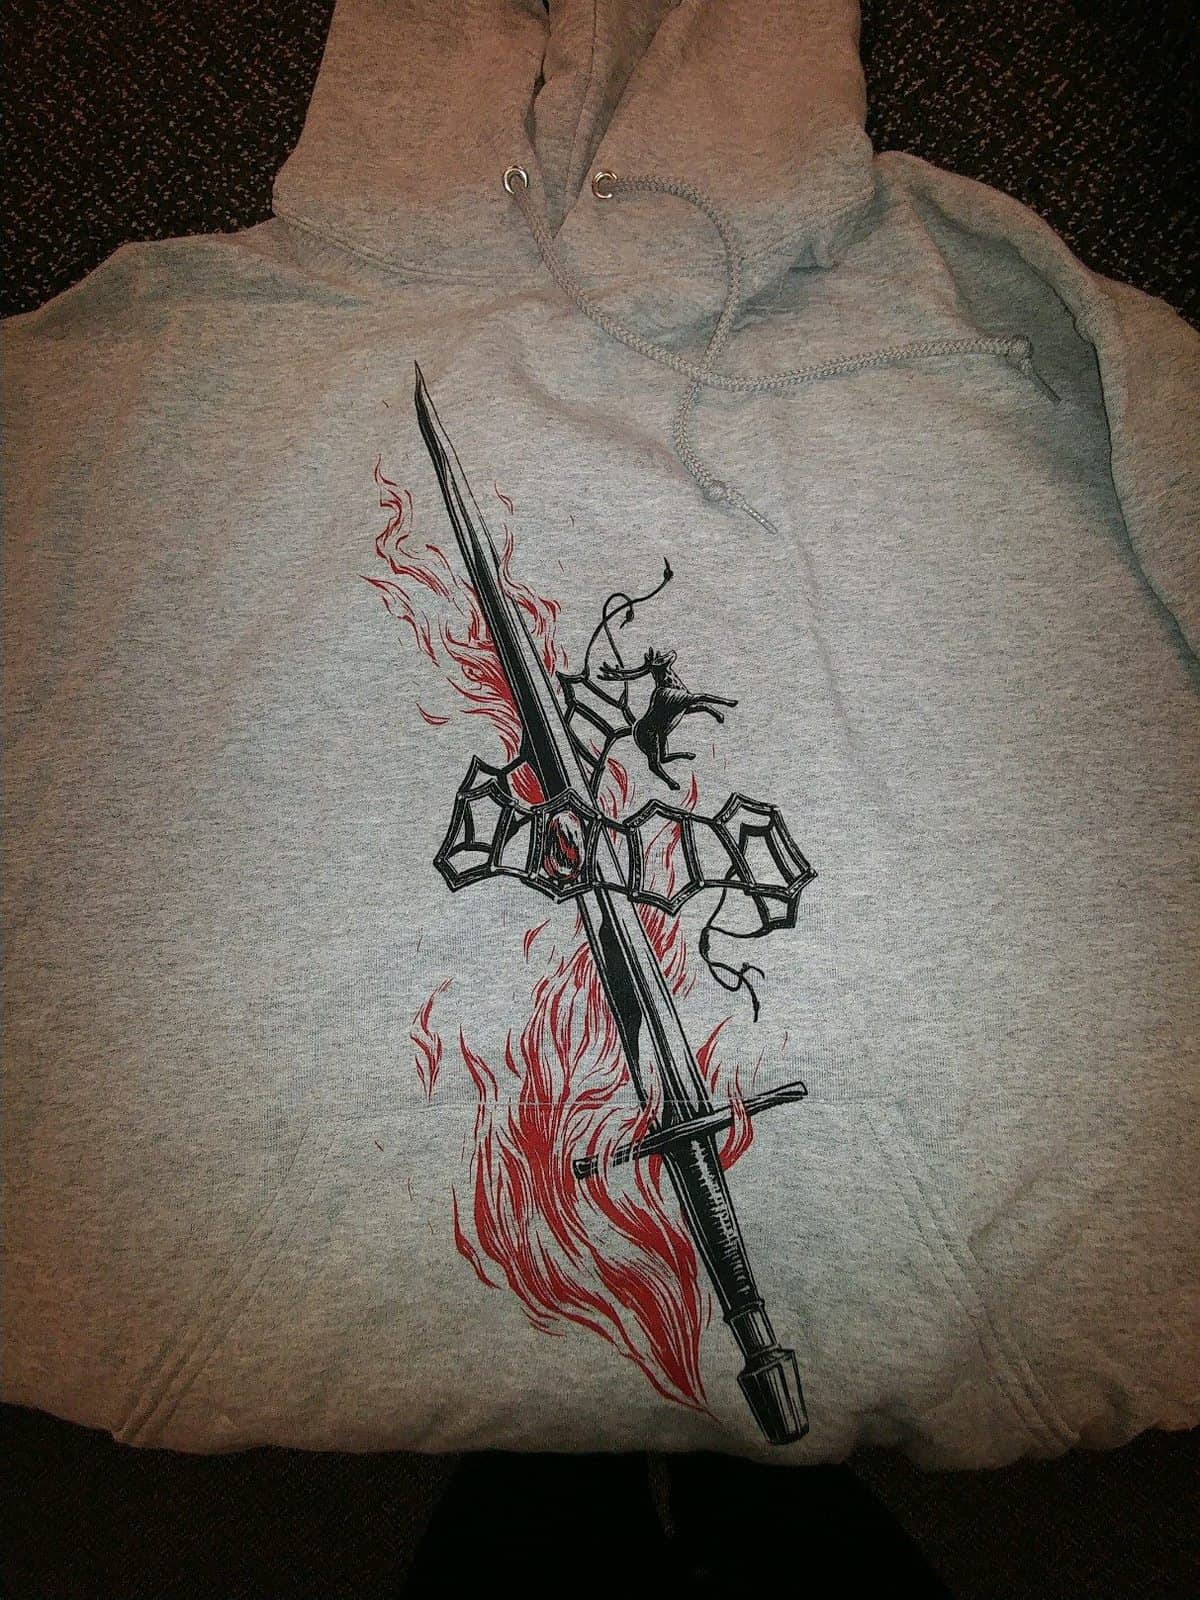 Loot Crate DX November 2016 Review - Game of Thrones Hoodie